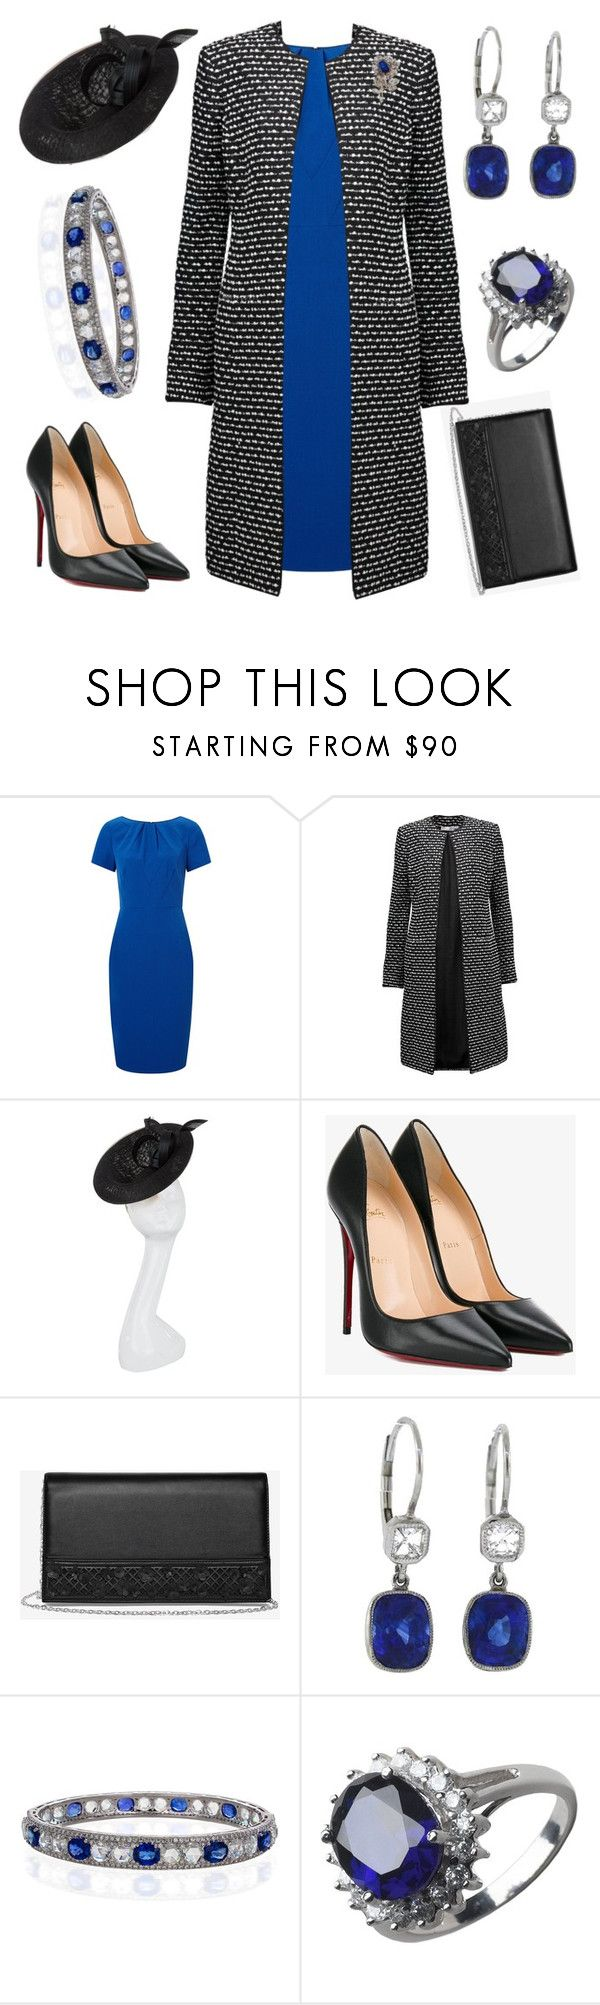 """""""Visiting Arlington Cemetary"""" by nmccullough ❤ liked on Polyvore featuring Adrianna Papell, Oscar de la Renta, Philip Treacy, Christian Louboutin, White House Black Market, 64 Facets and Lord & Taylor"""